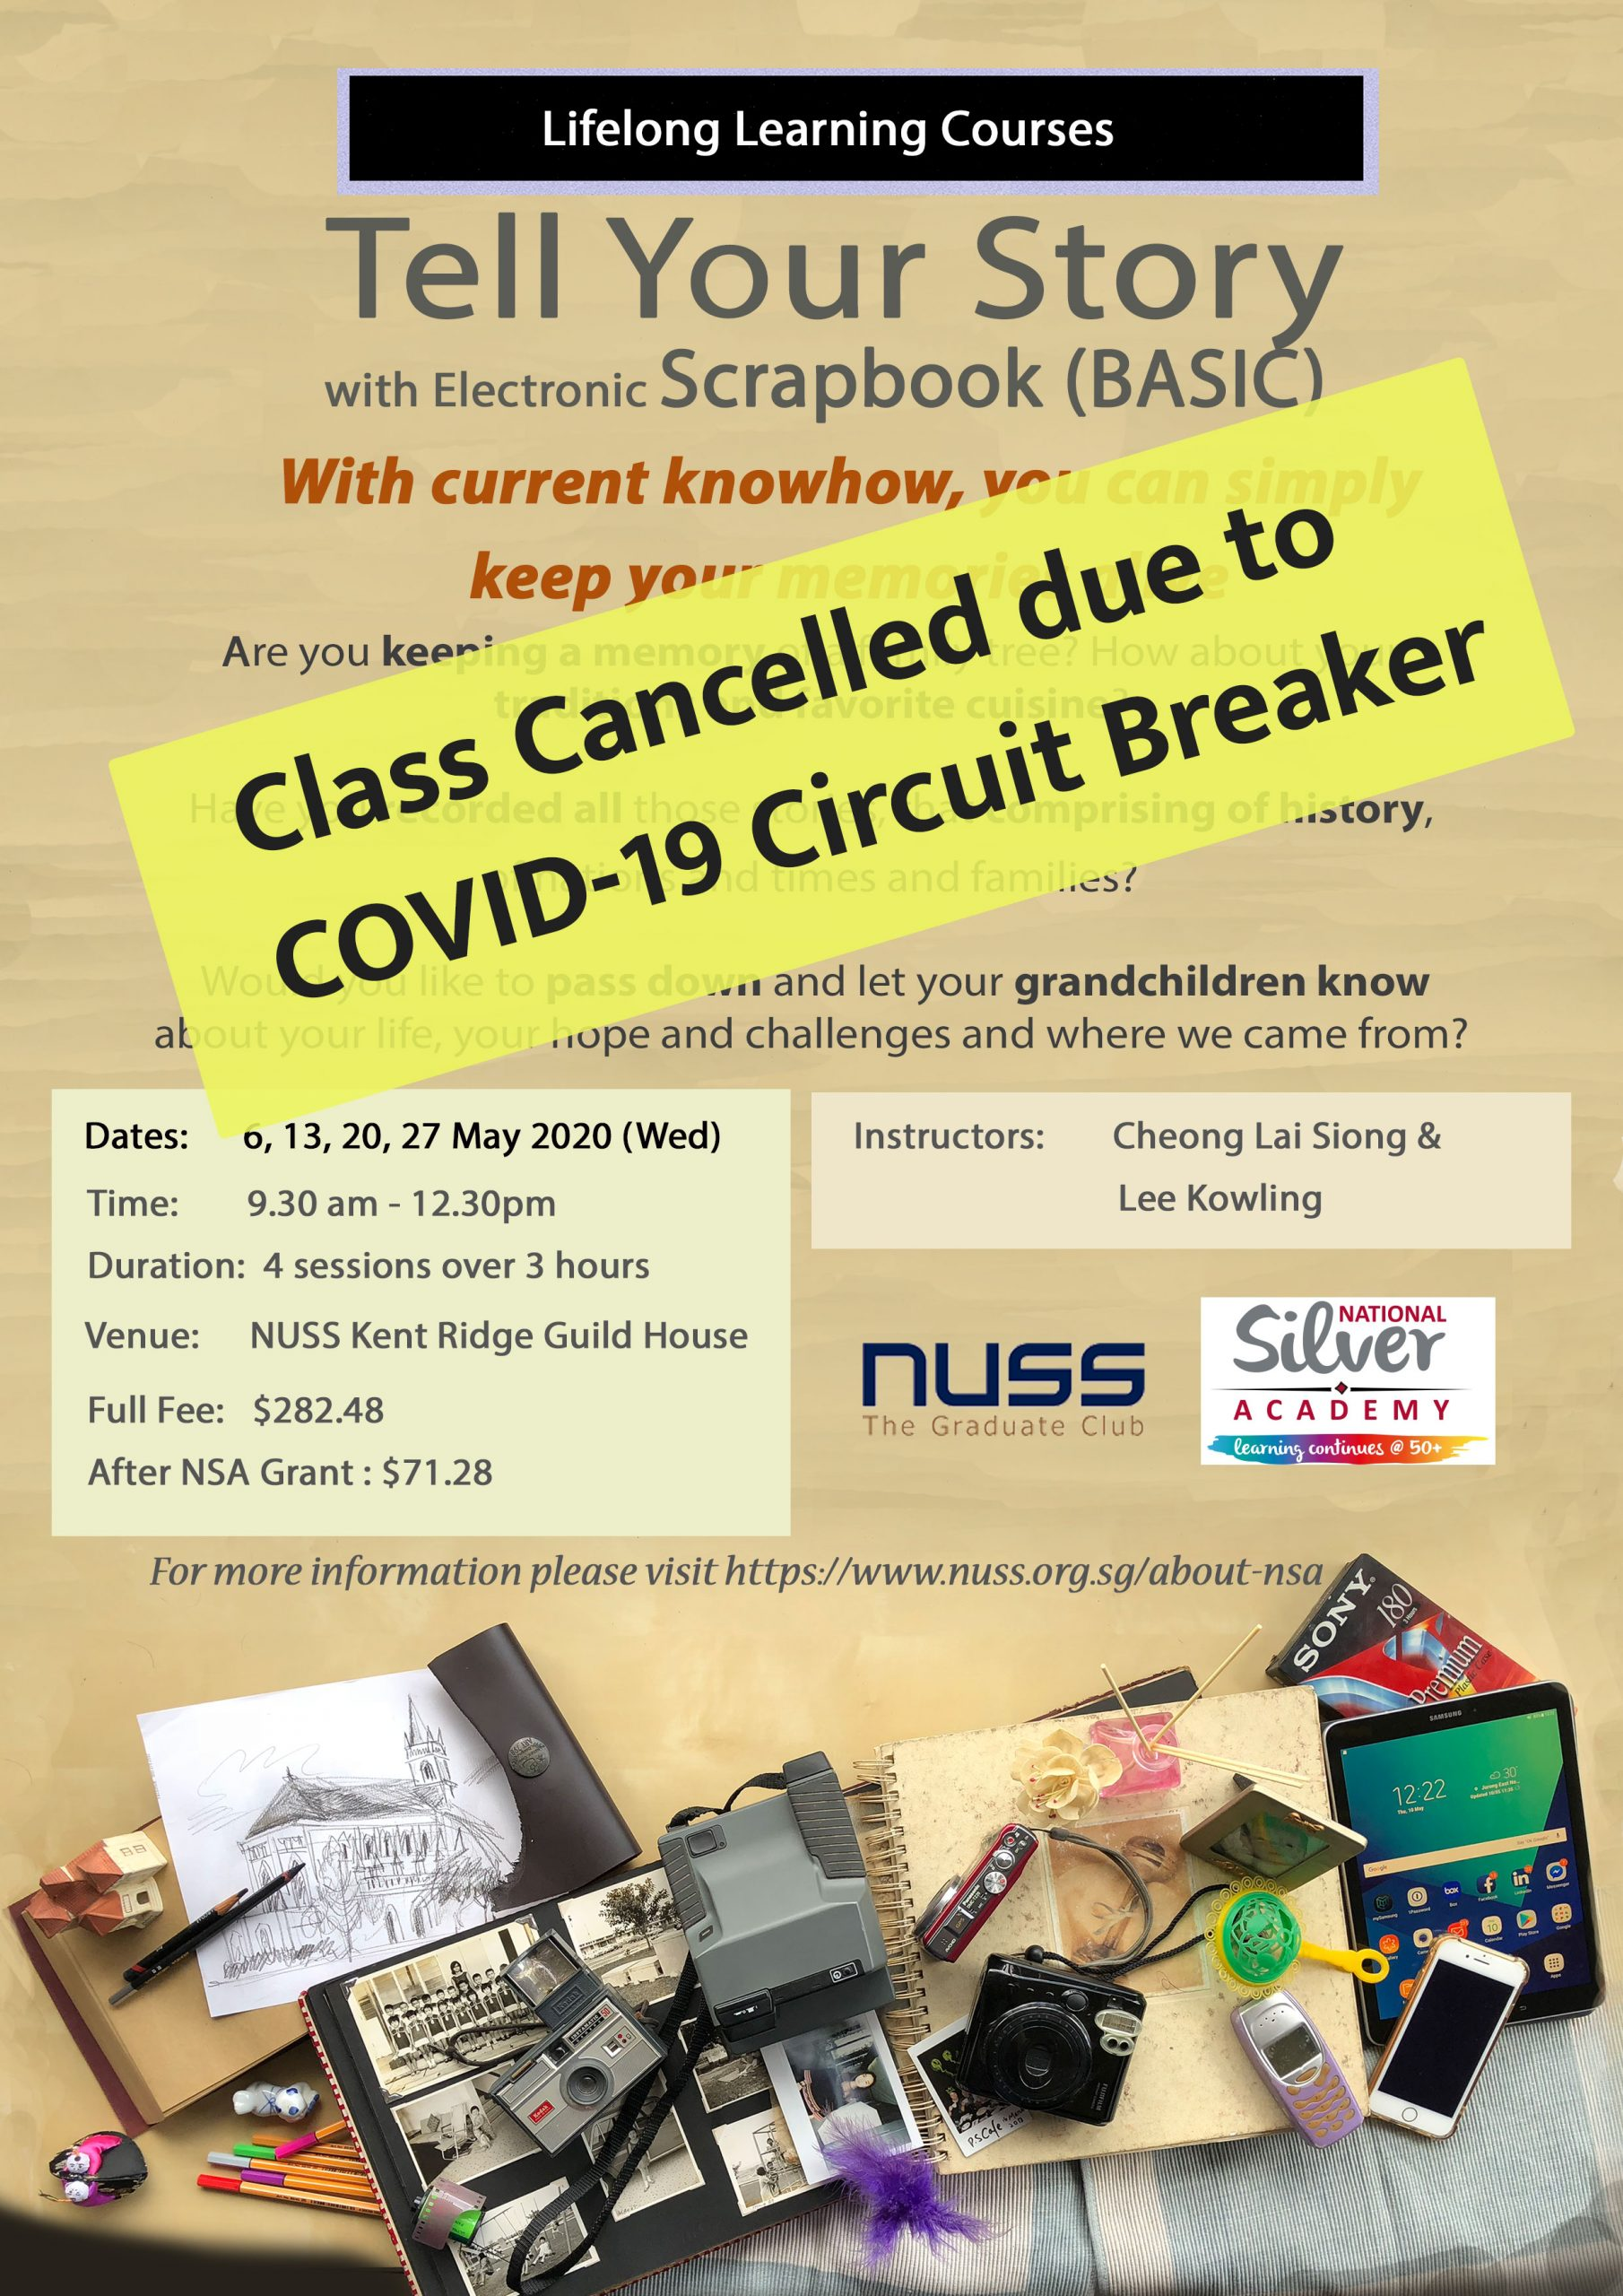 NUSS Class cancelled due to Circuit Breaker